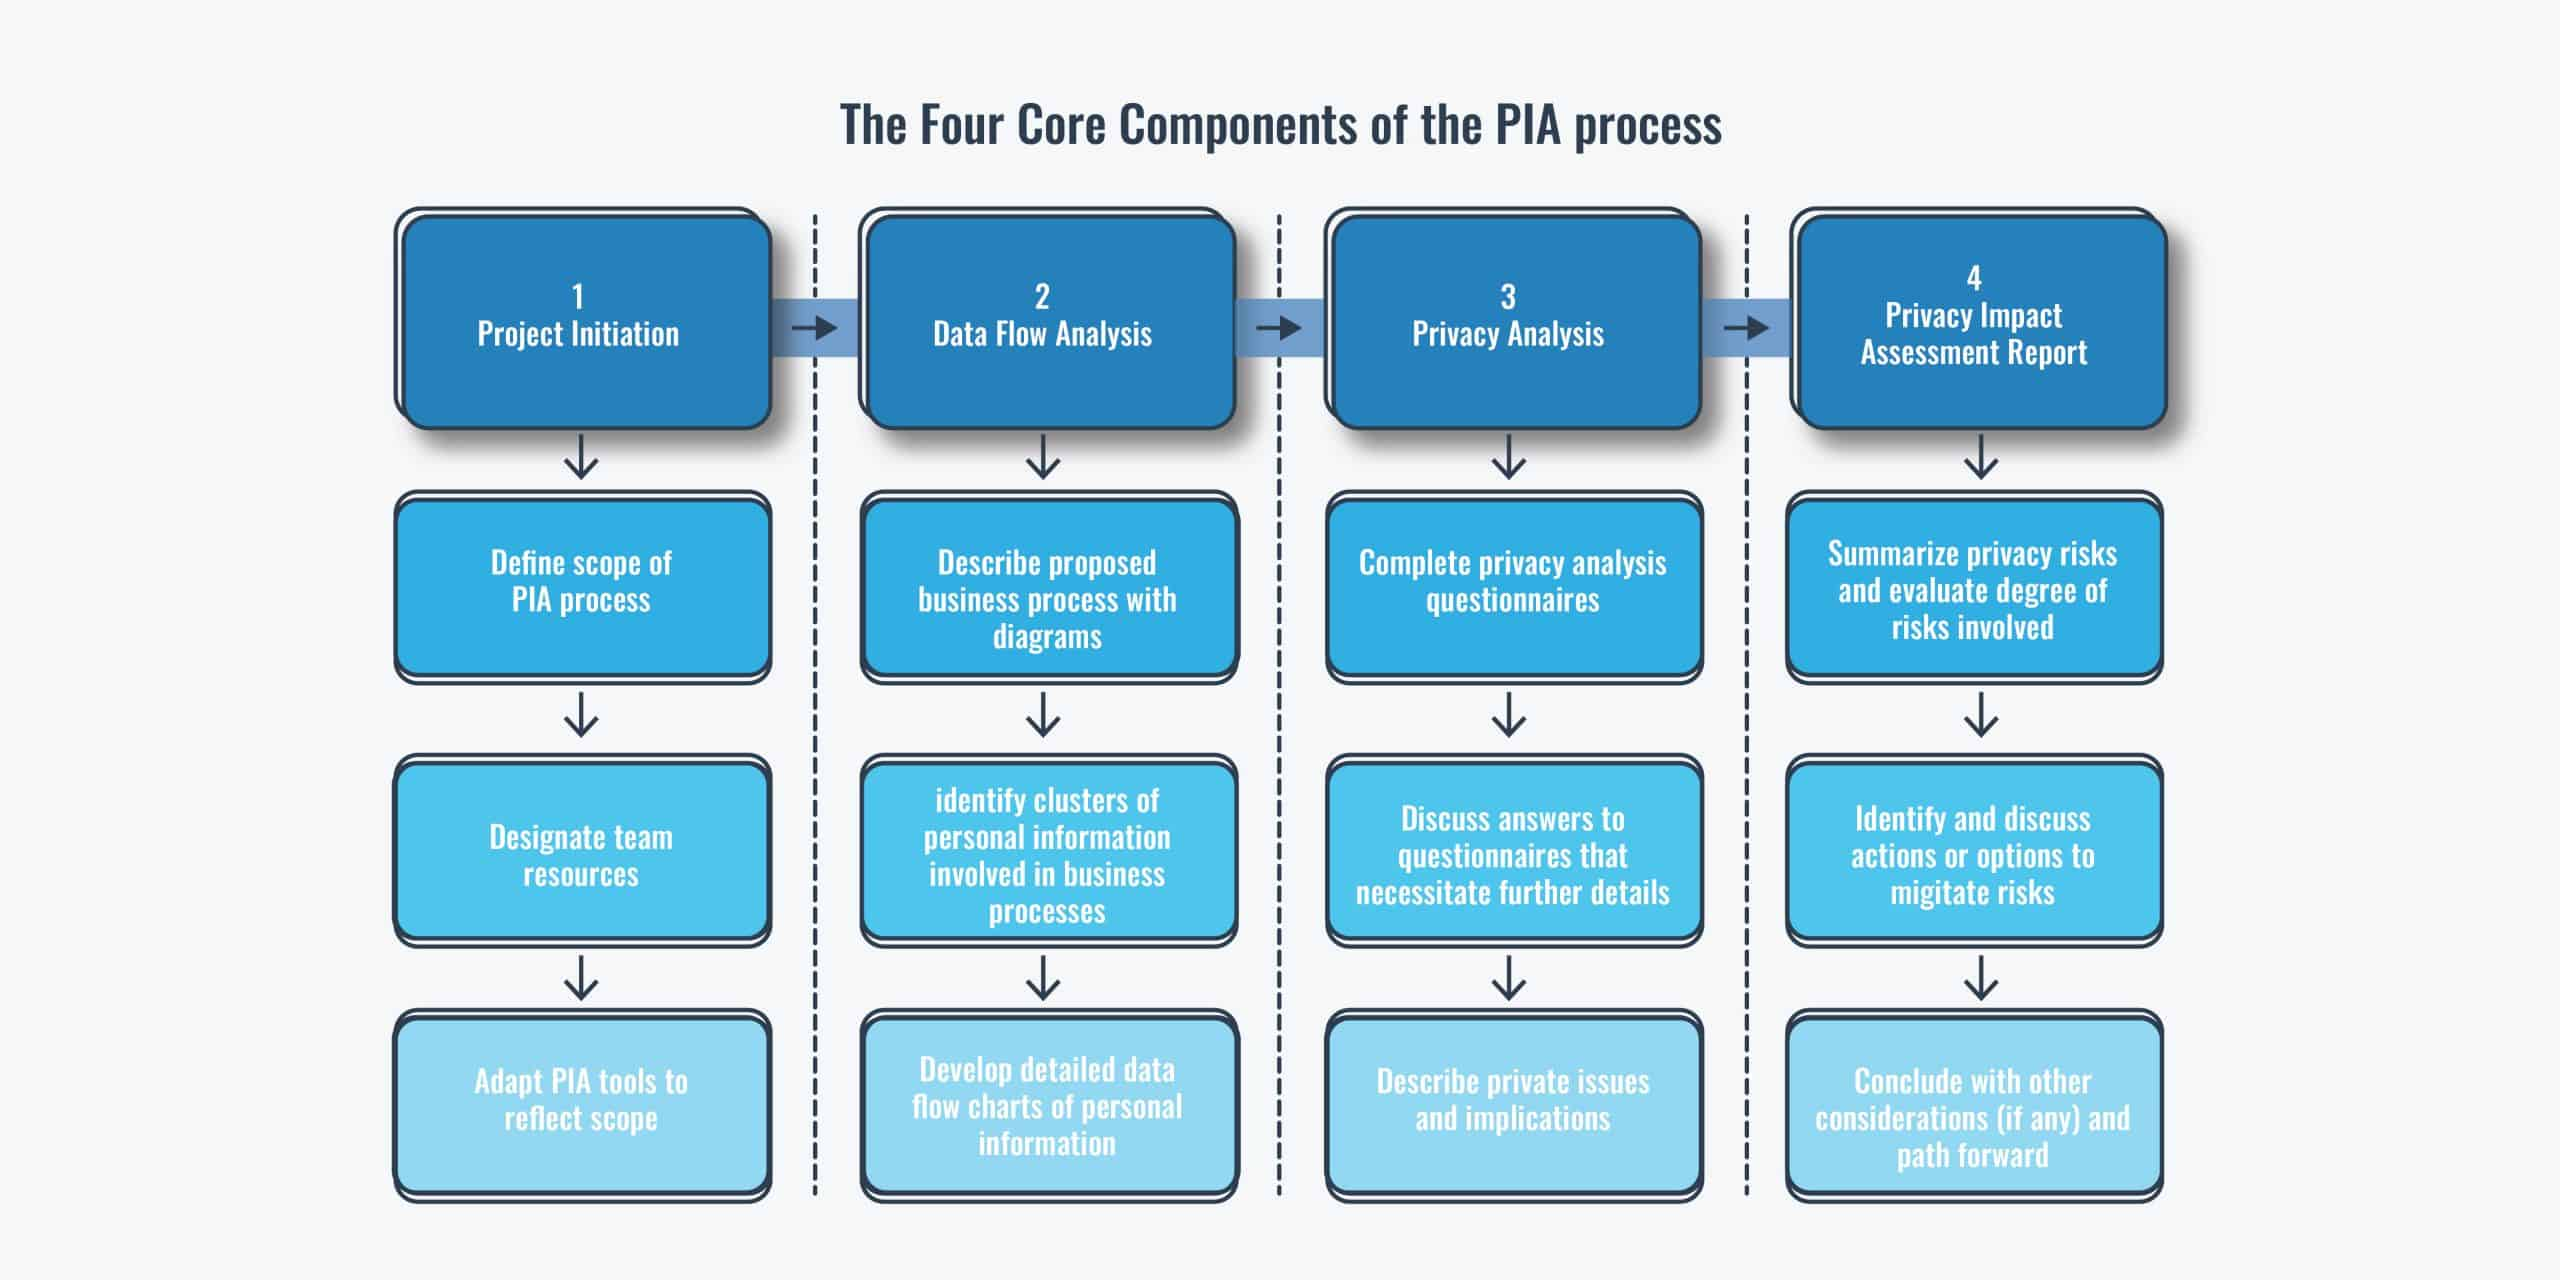 Diagram showing the four core components of the PIA process